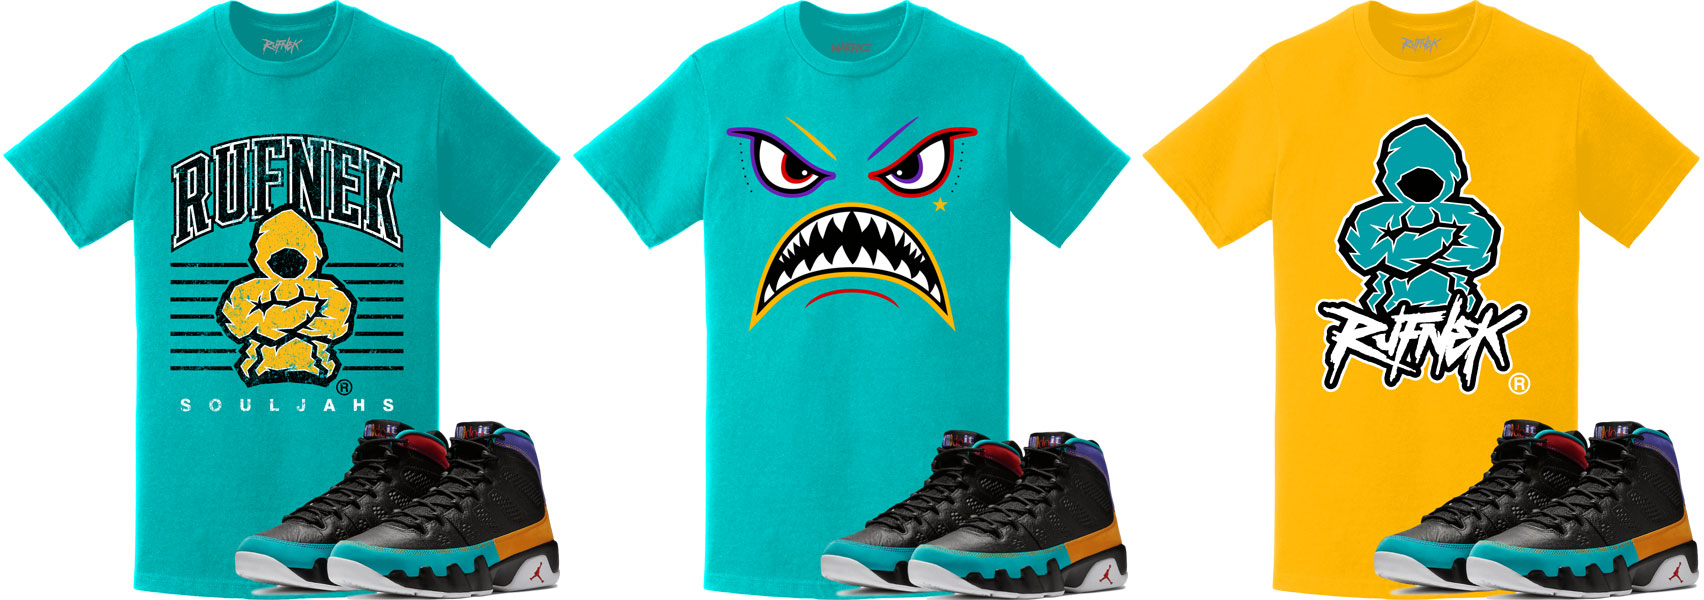 jordan-9-dream-it-do-it-sneaker-match-tee-shirts